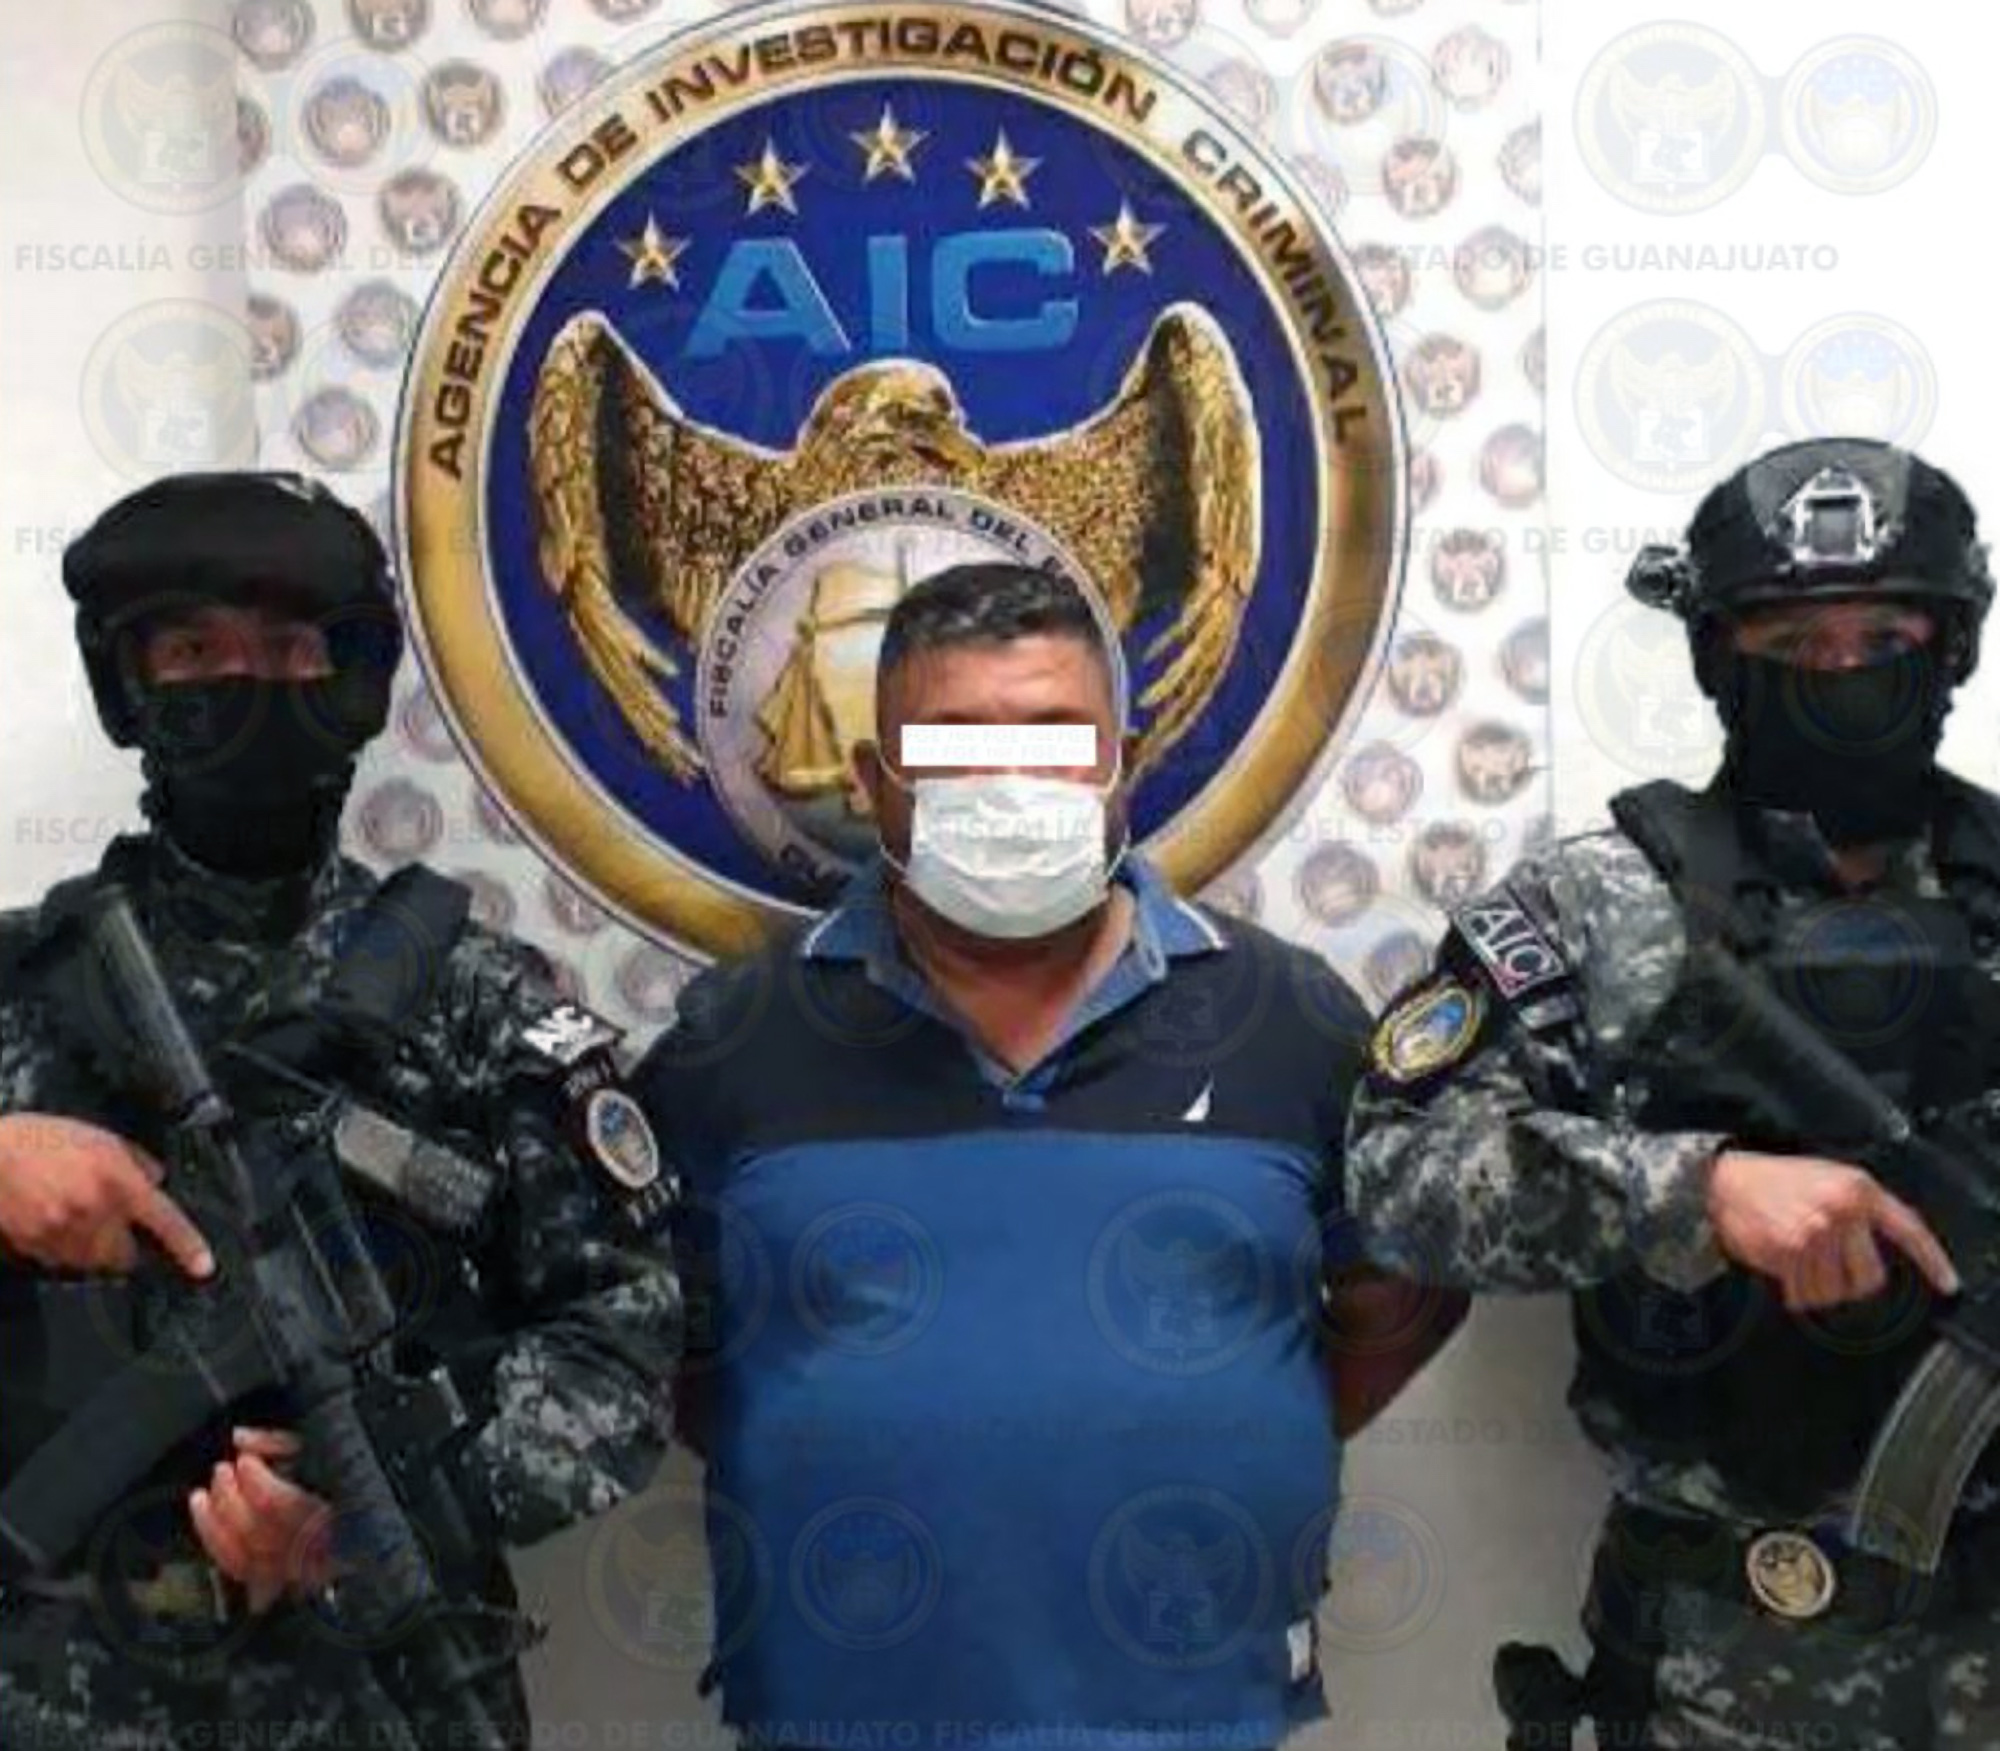 Leader of Mexican Oil-Stealing Cartel Arrested